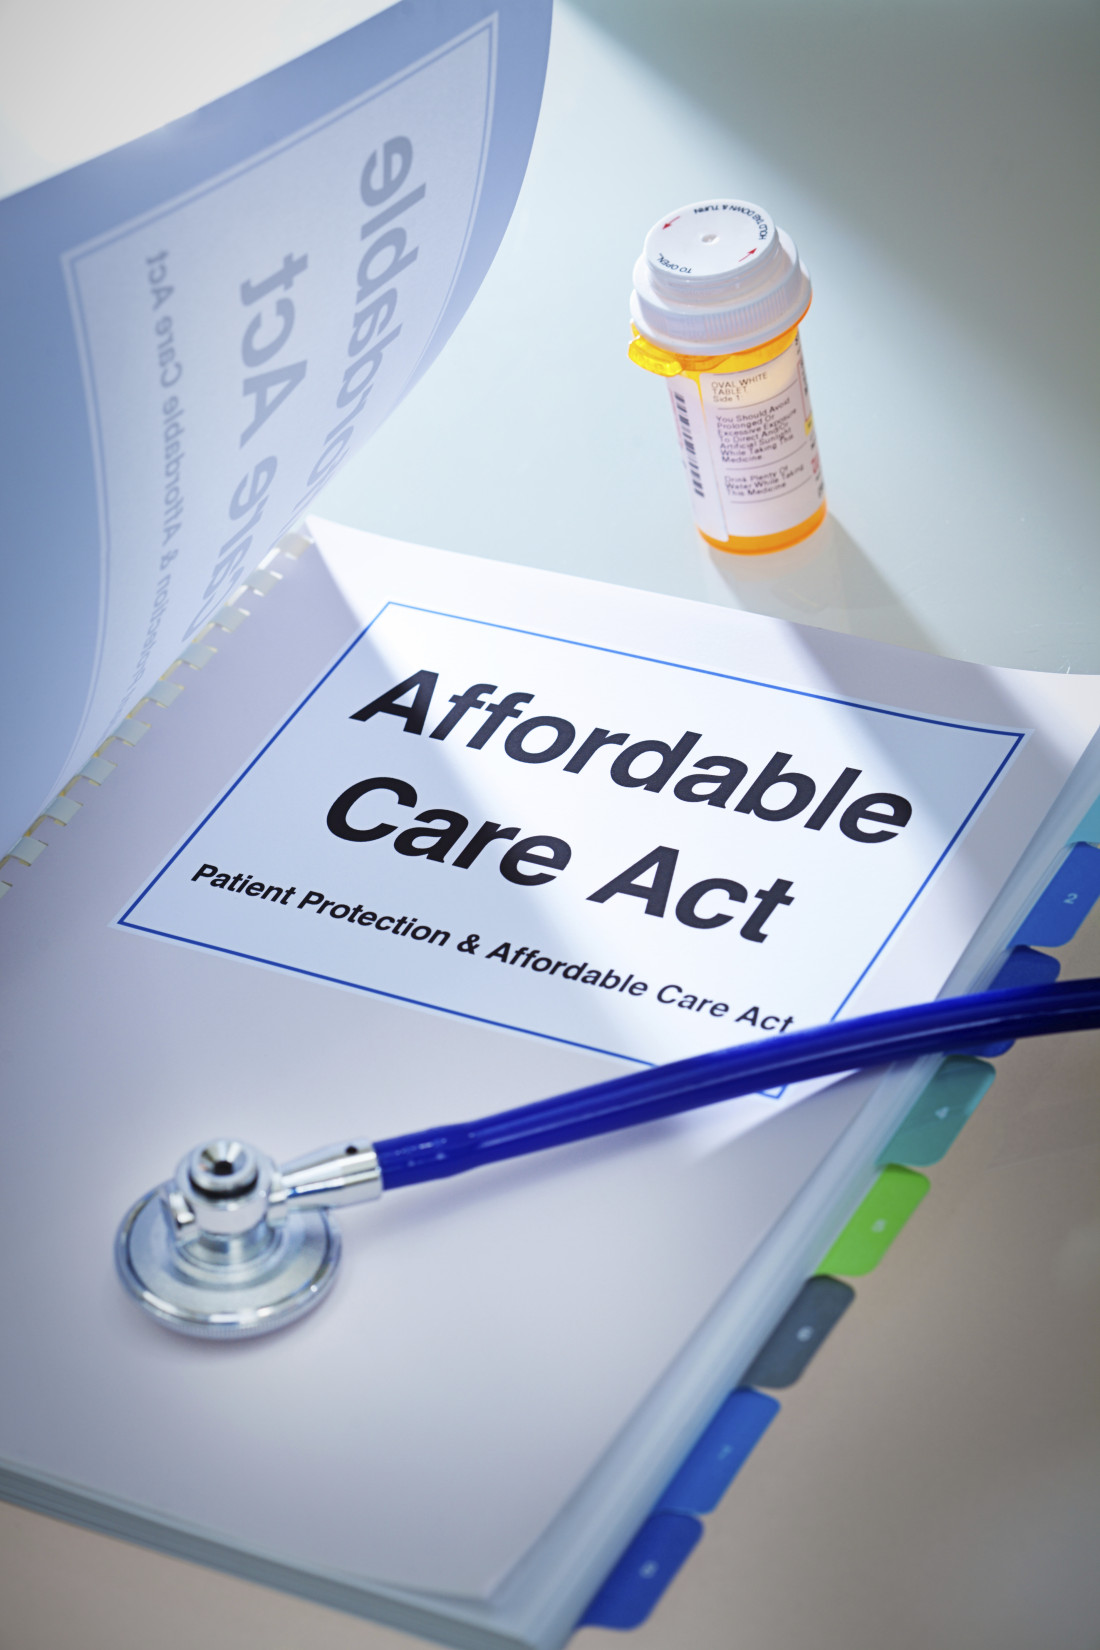 Government Intervenes in Affordable Care Act 60 day Rule Violation Allegation